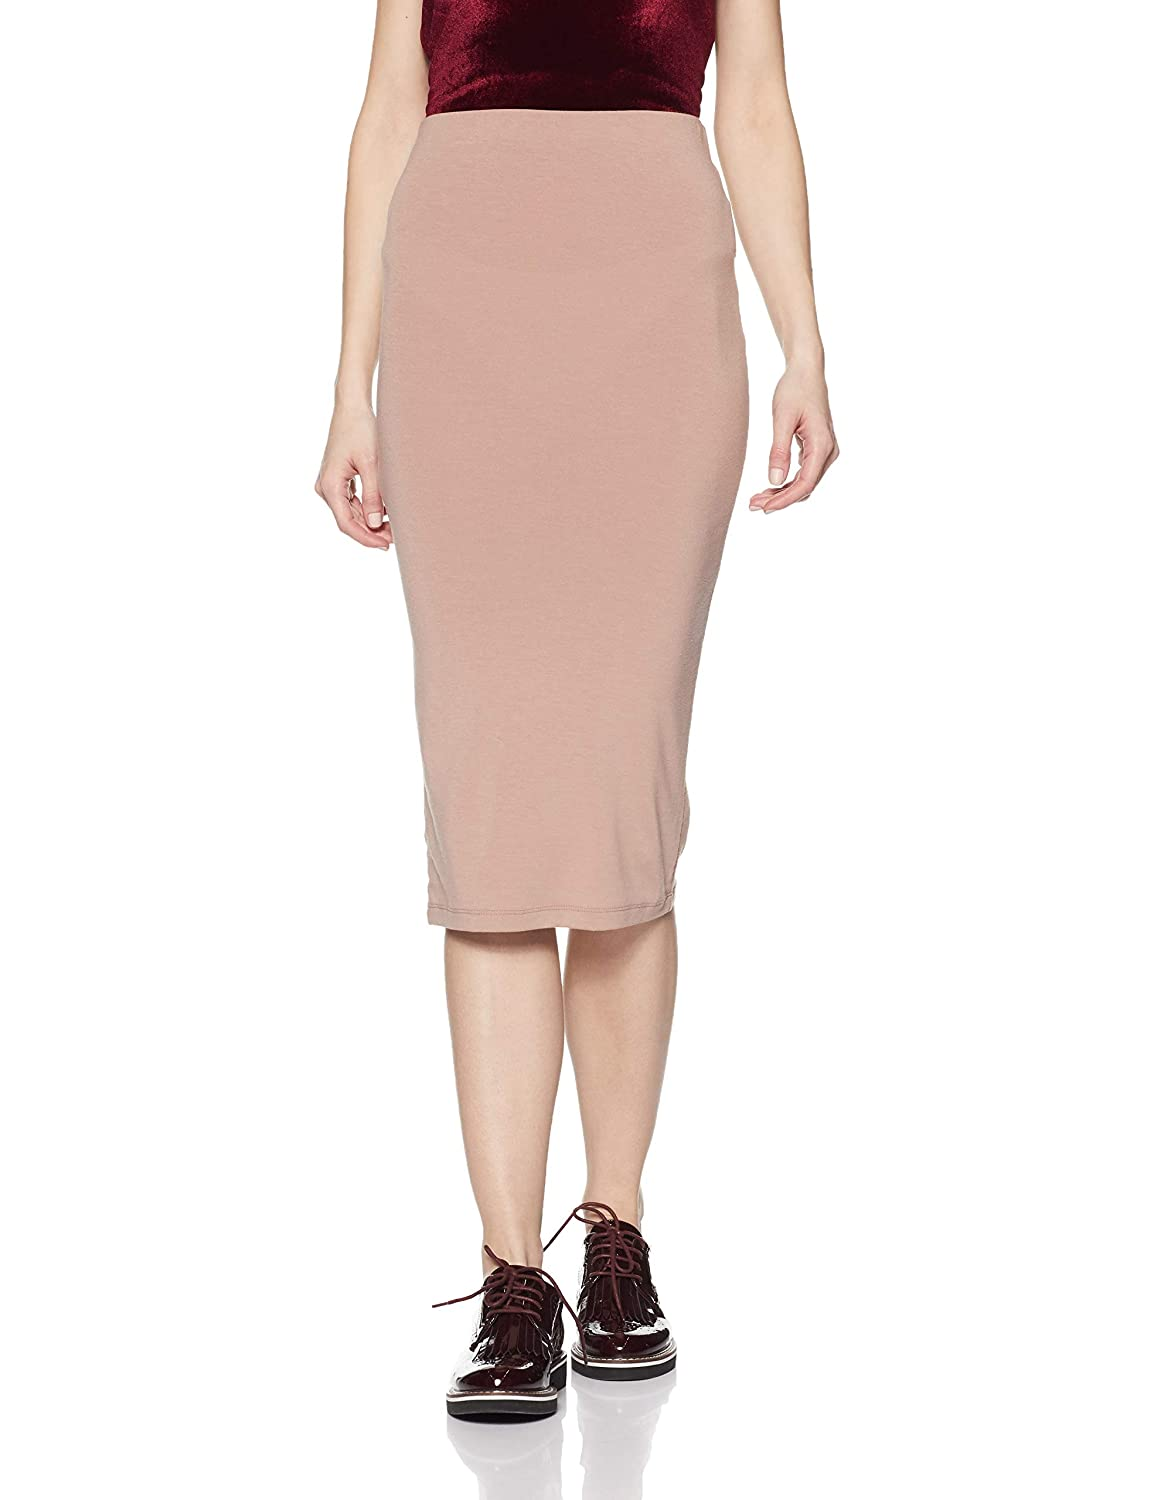 69de9d6095 Forever 21 Women's Polyester Bodycon Midi Knit Skirt (233787062, Walnut,  Small): Amazon.in: Clothing & Accessories